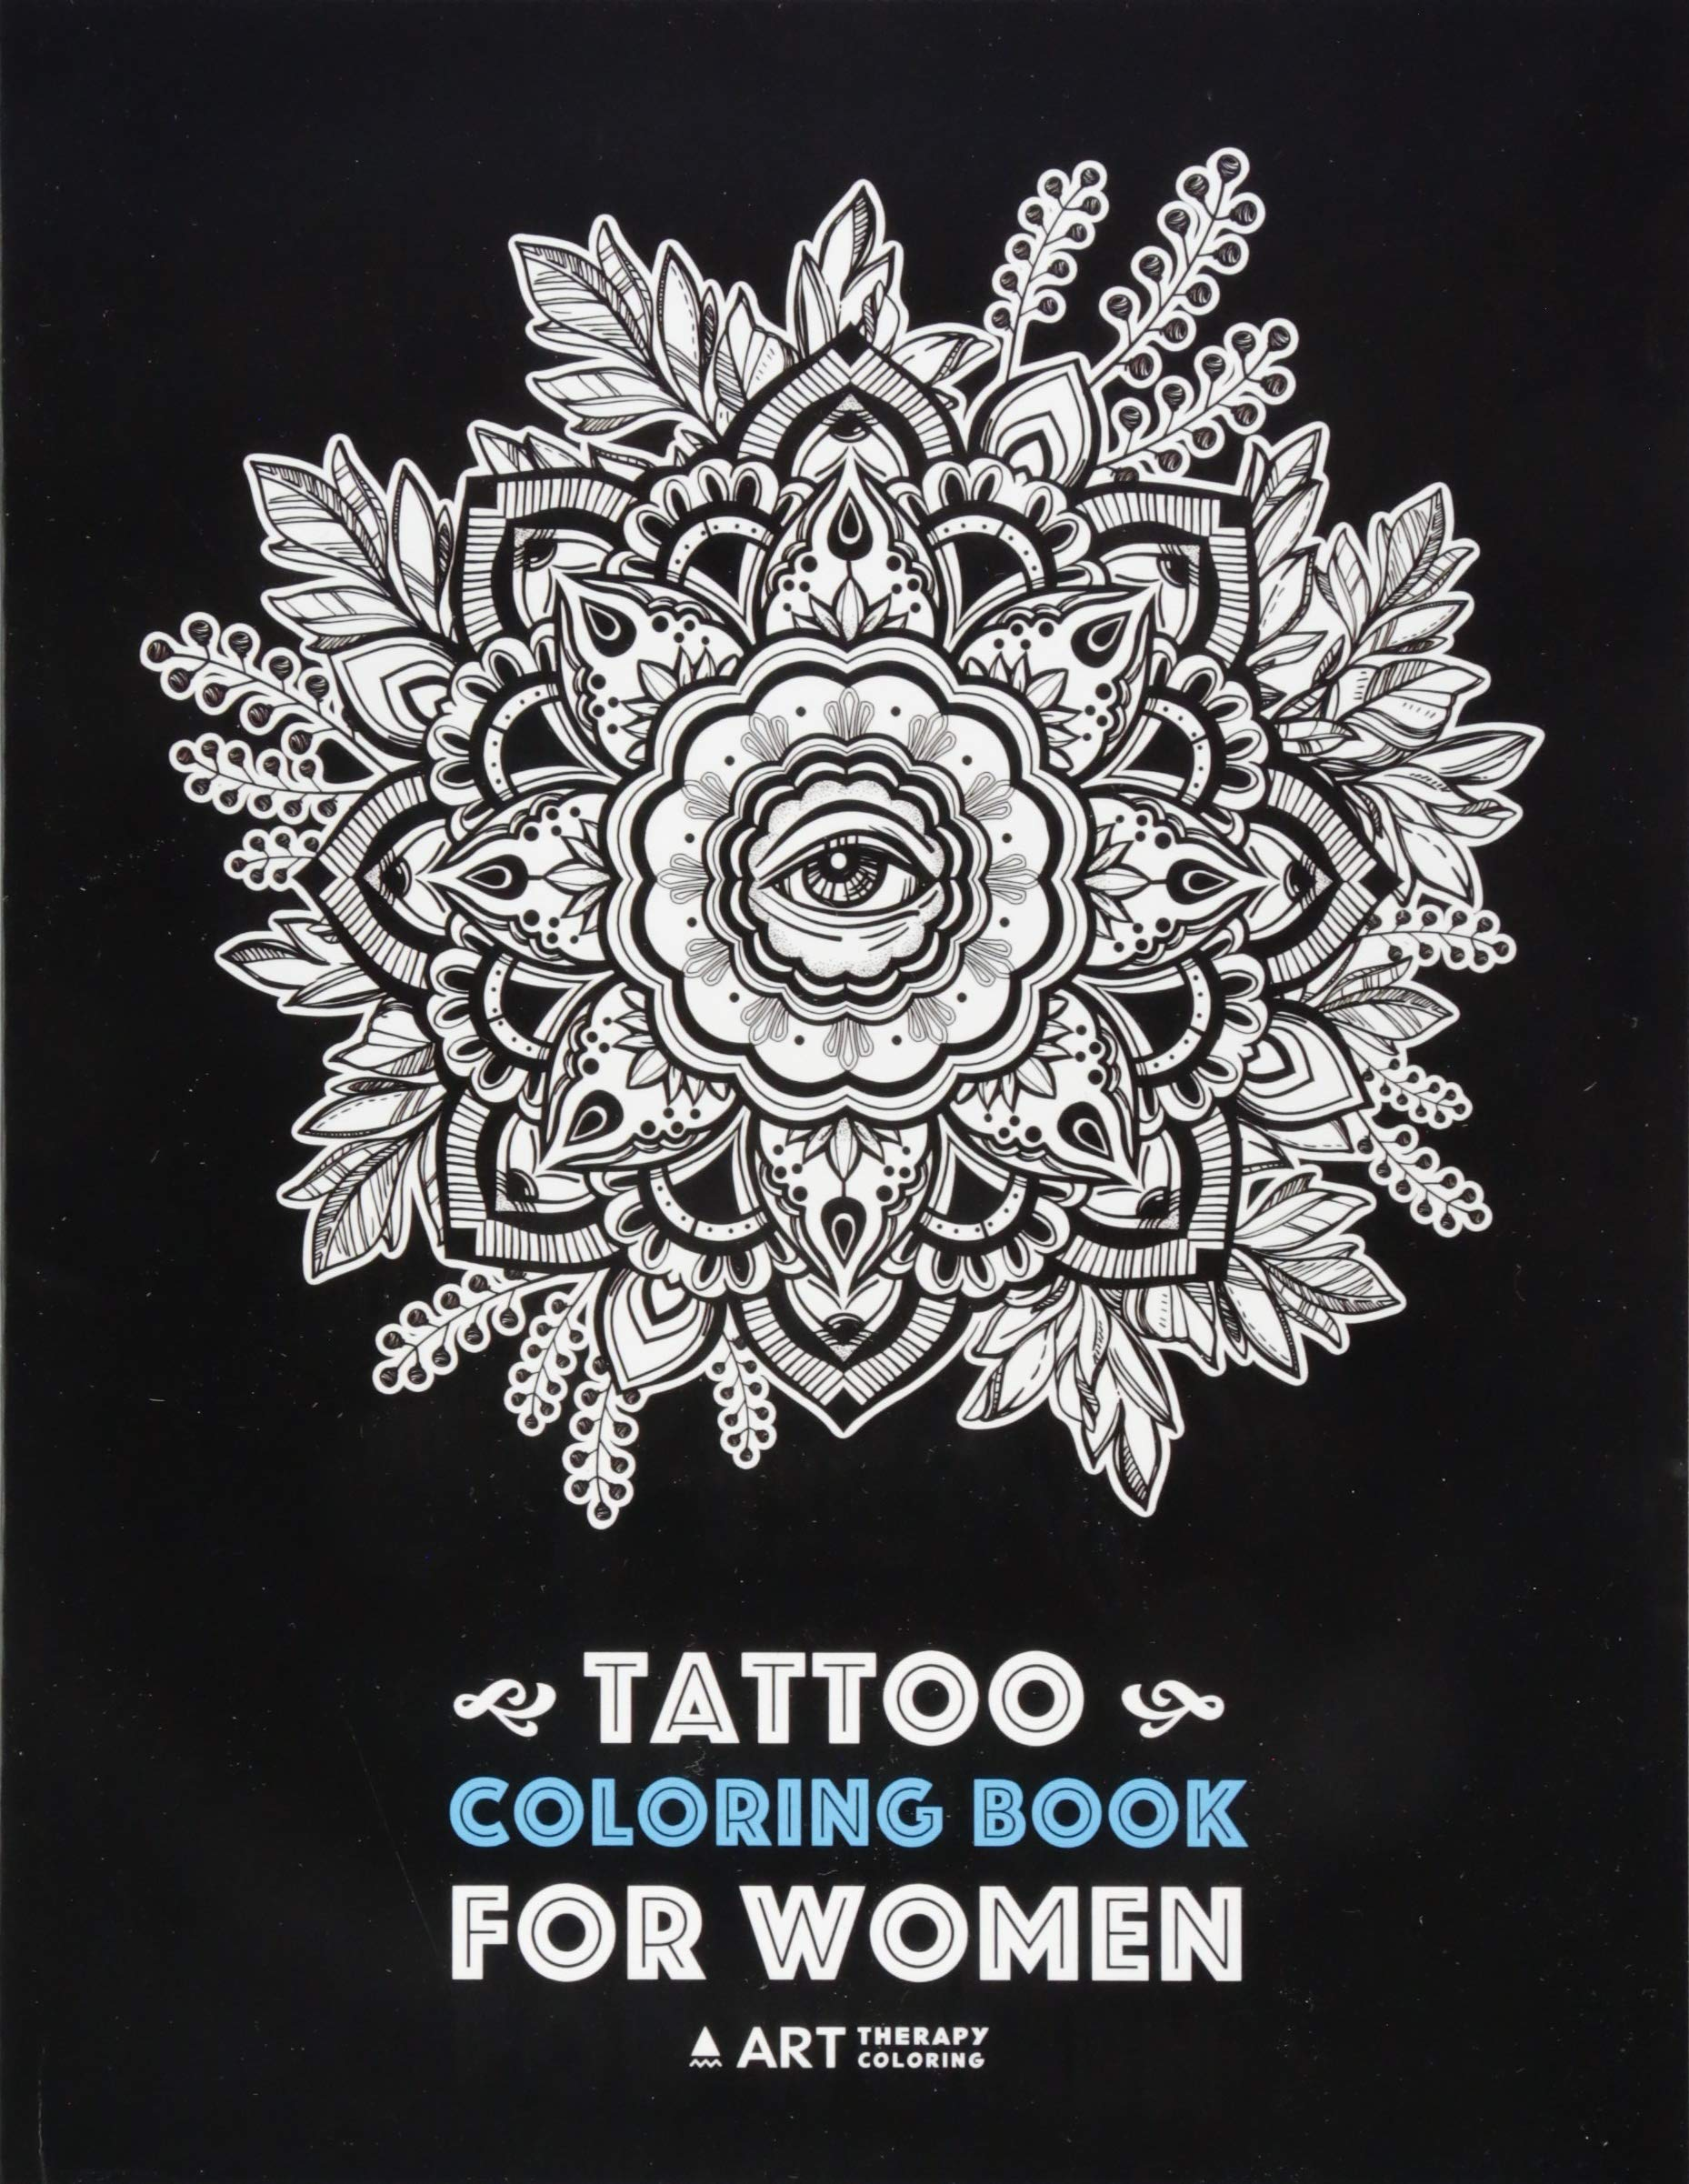 tattoo coloring book for women anti stress coloring book for womens relaxation detailed tattoo designs of lion owl butterfly birds flowers meditation practice for stress relief